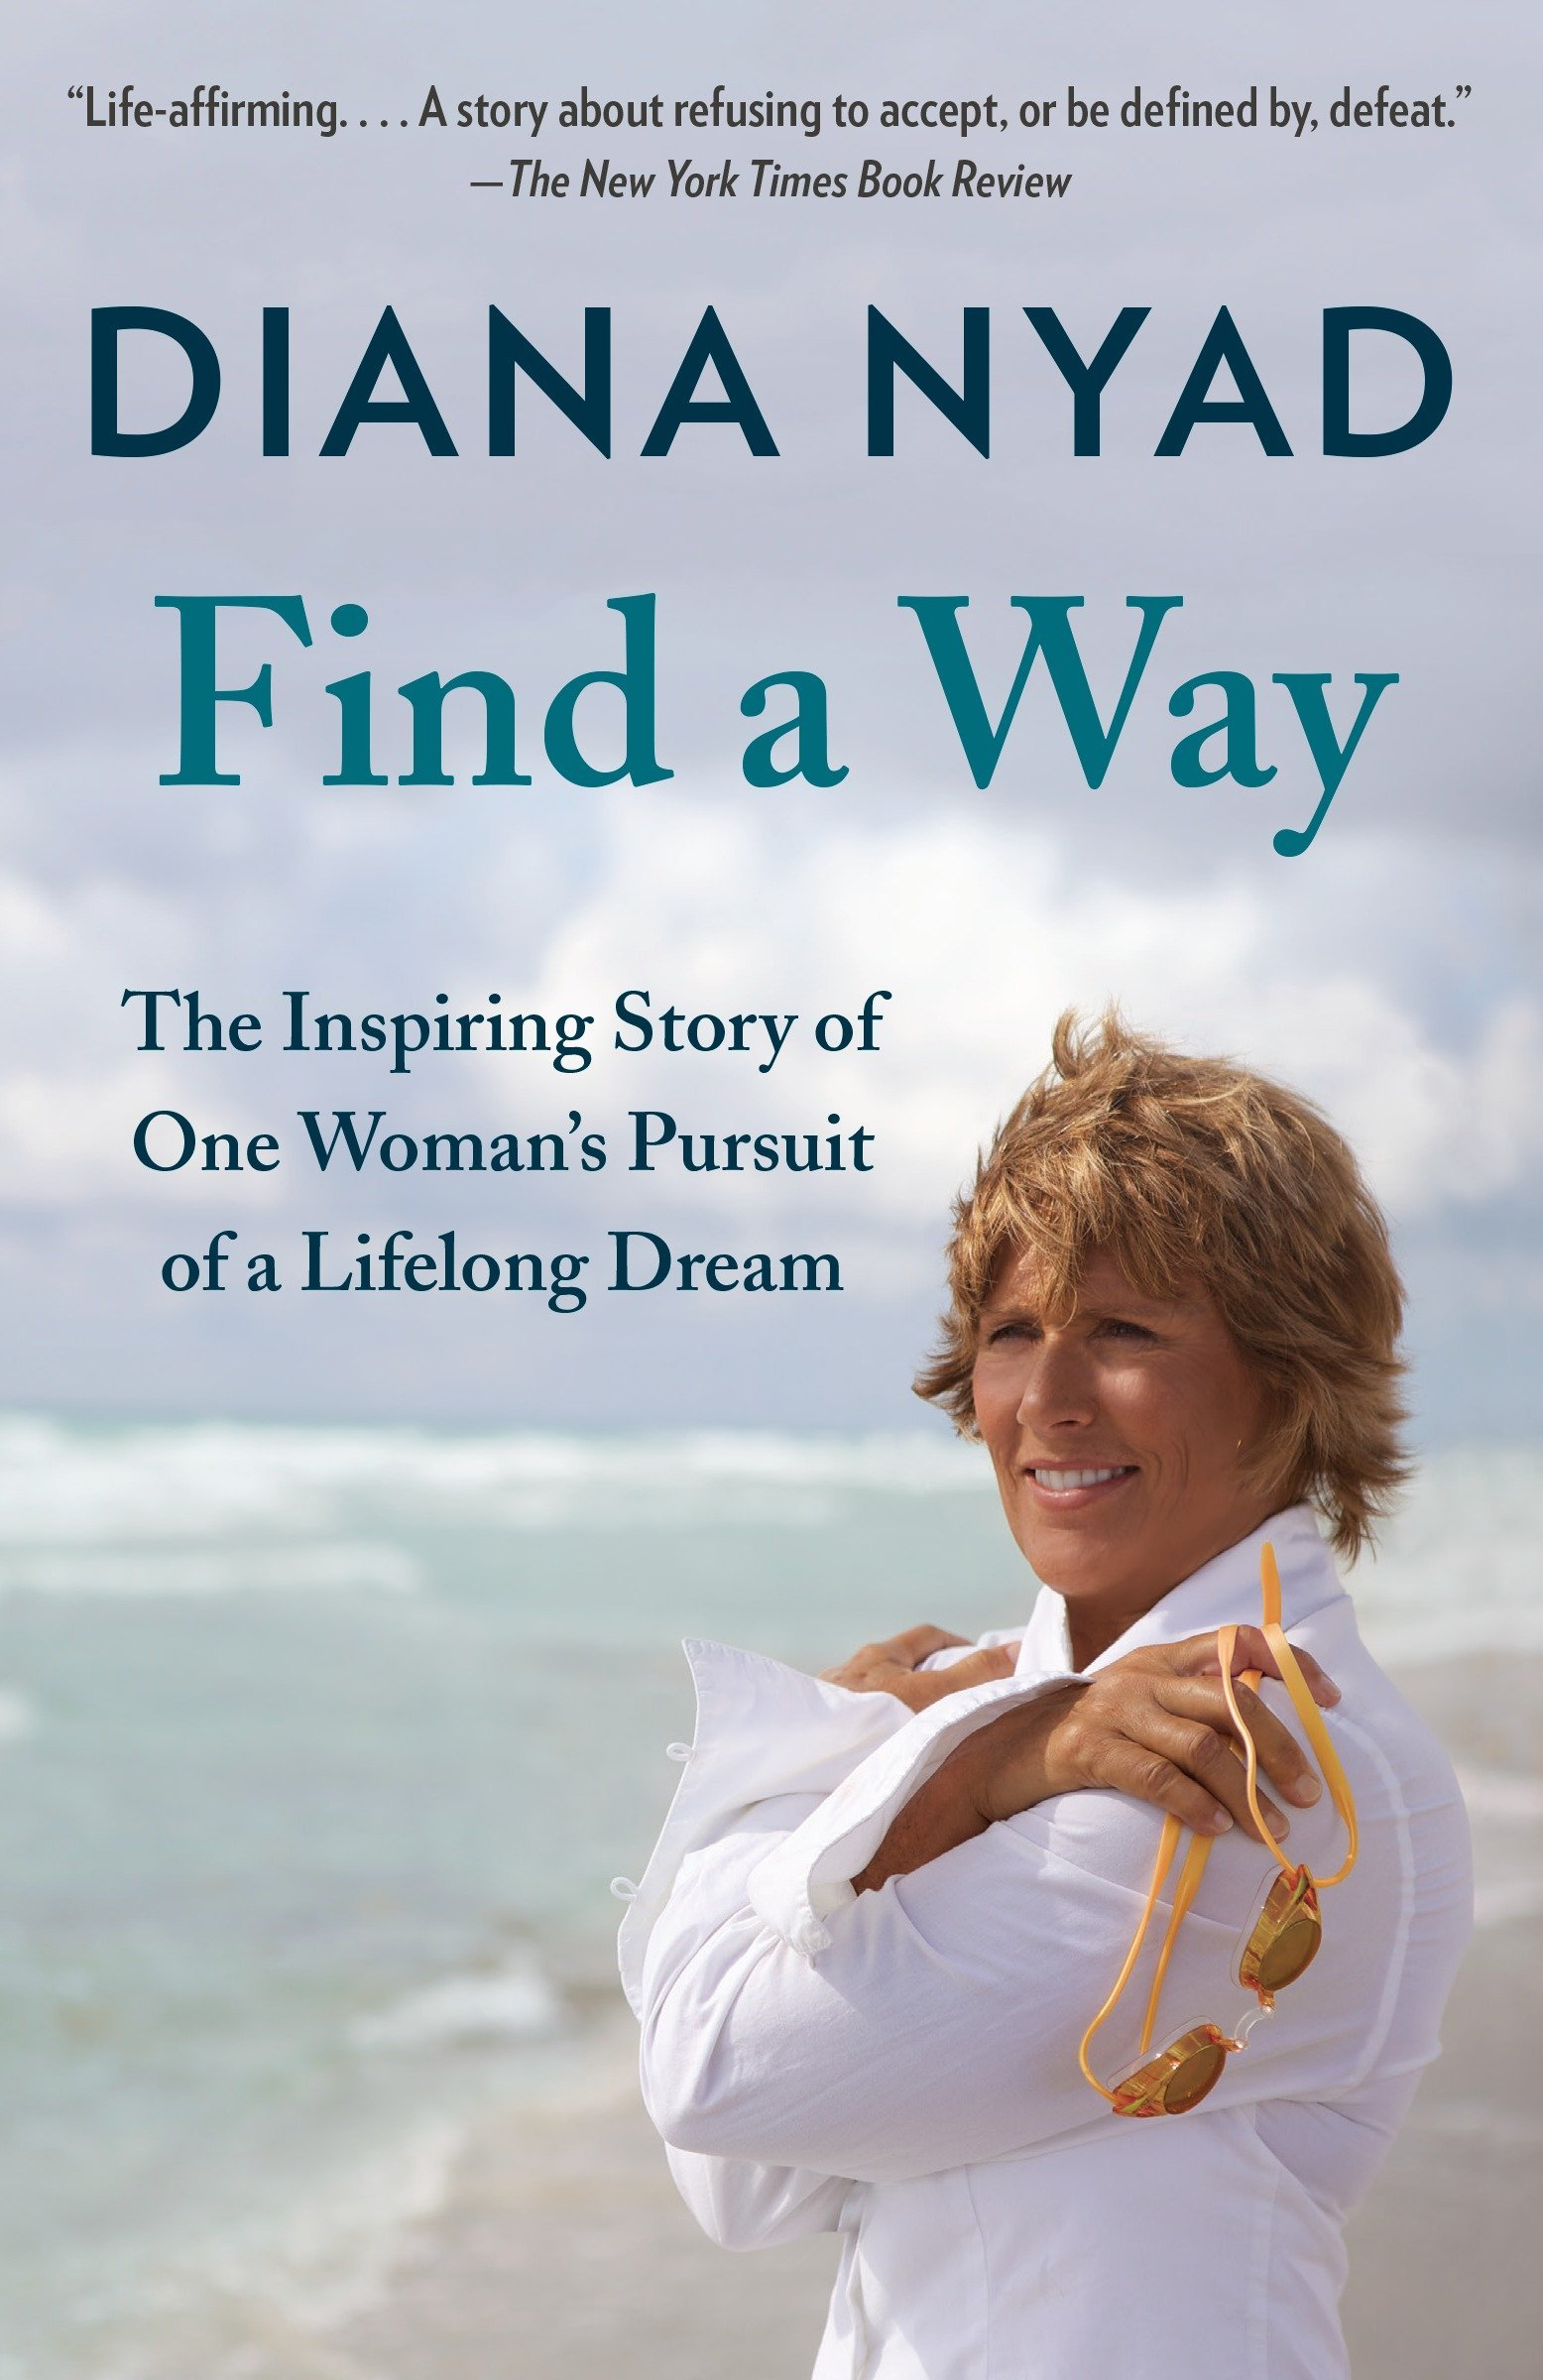 Find a Way: The Inspiring Story of One Woman's Pursuit of a Lifelong Dream